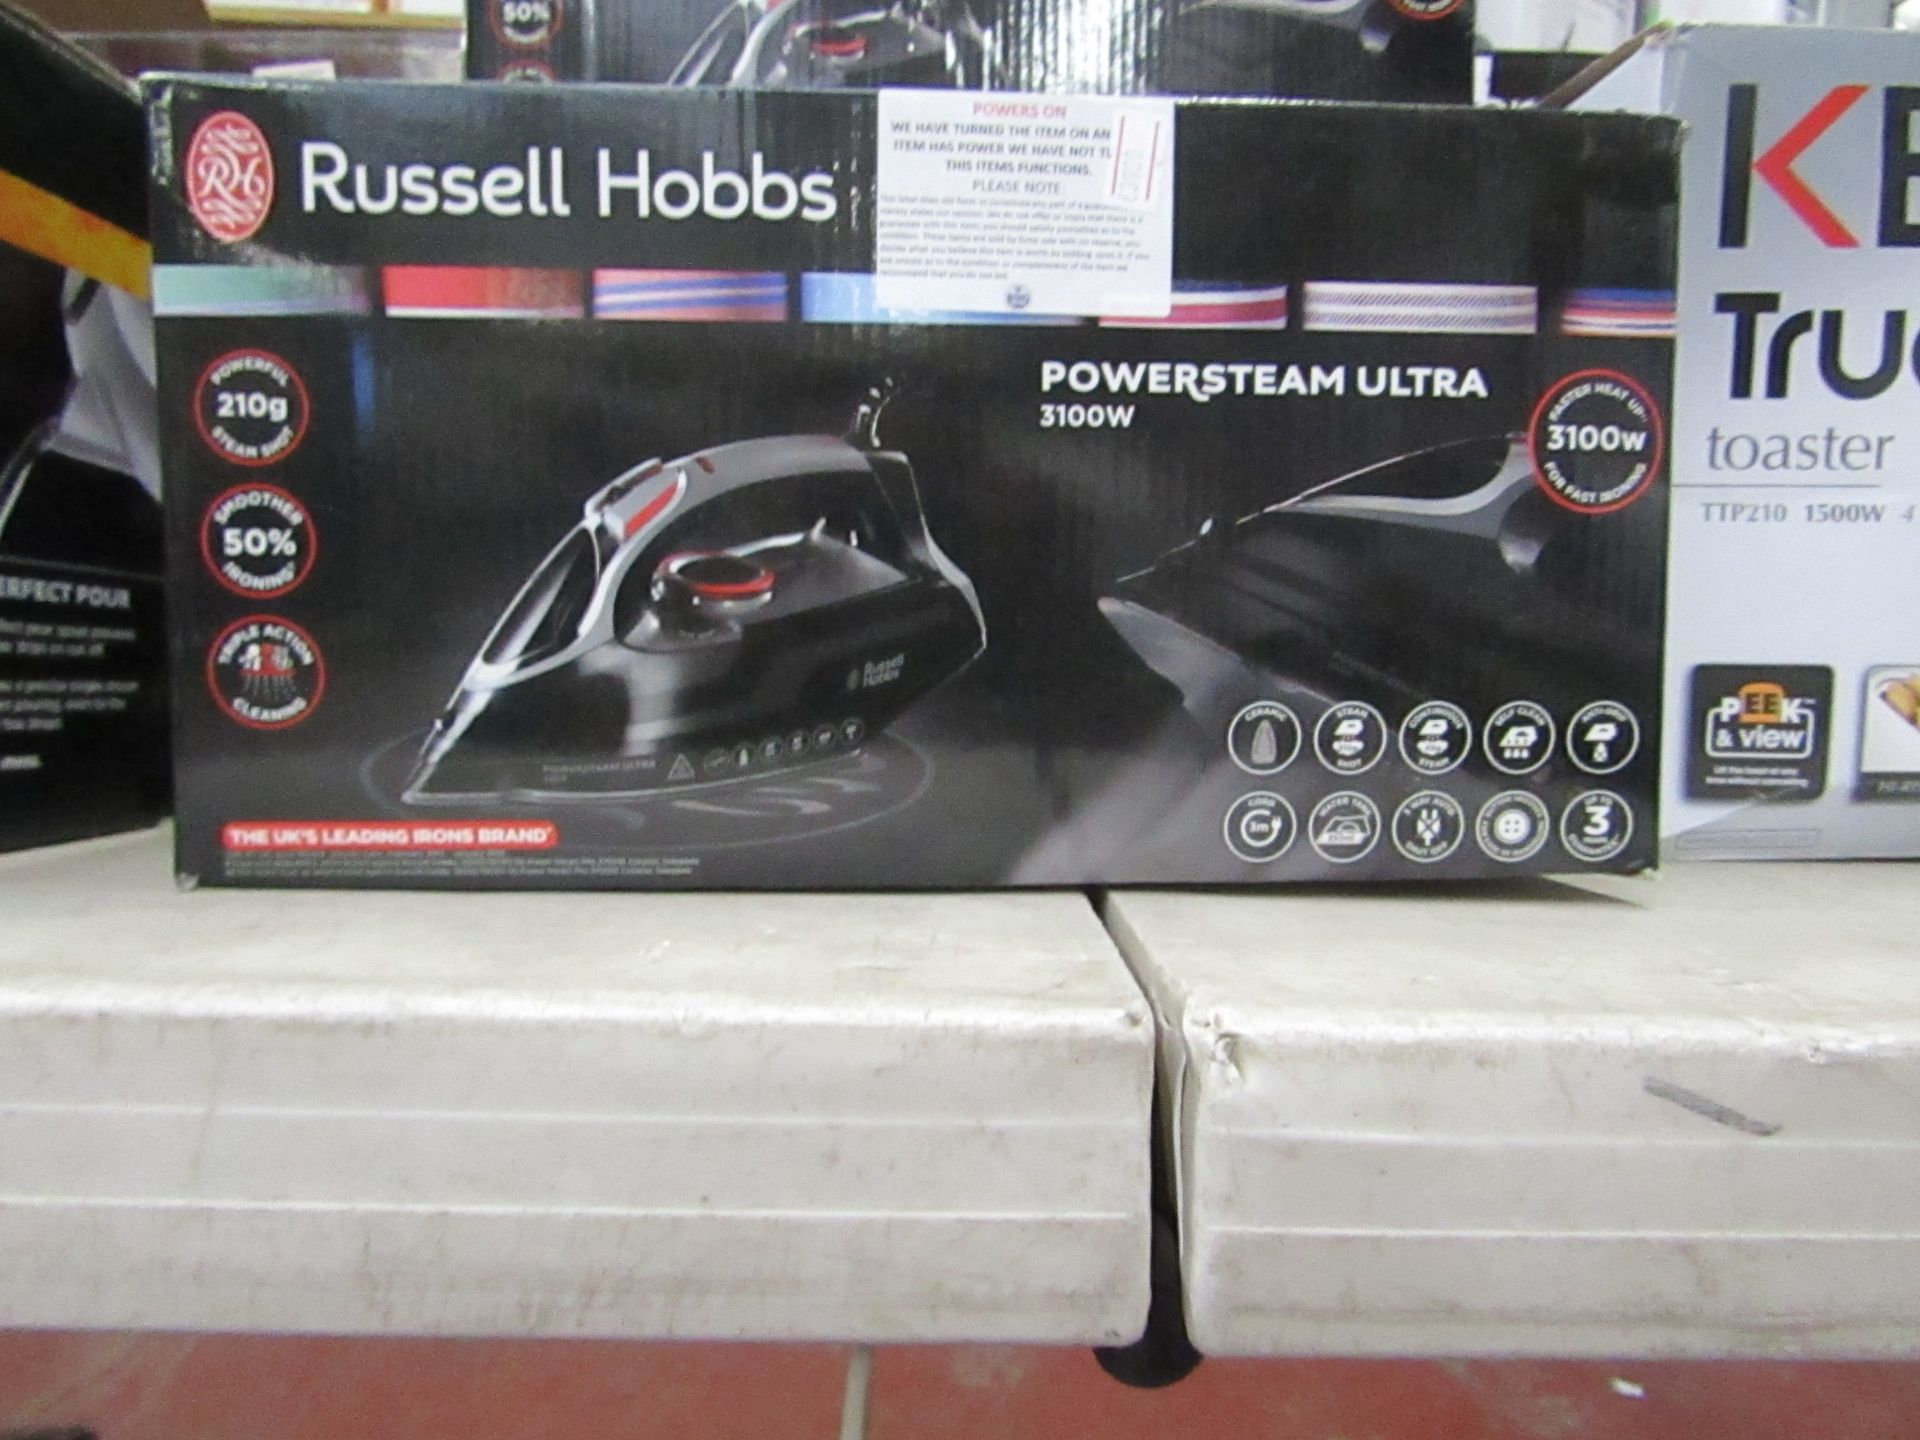 Lot 34 - Russell Hobbs Power steam ultra iron powers on and boxed